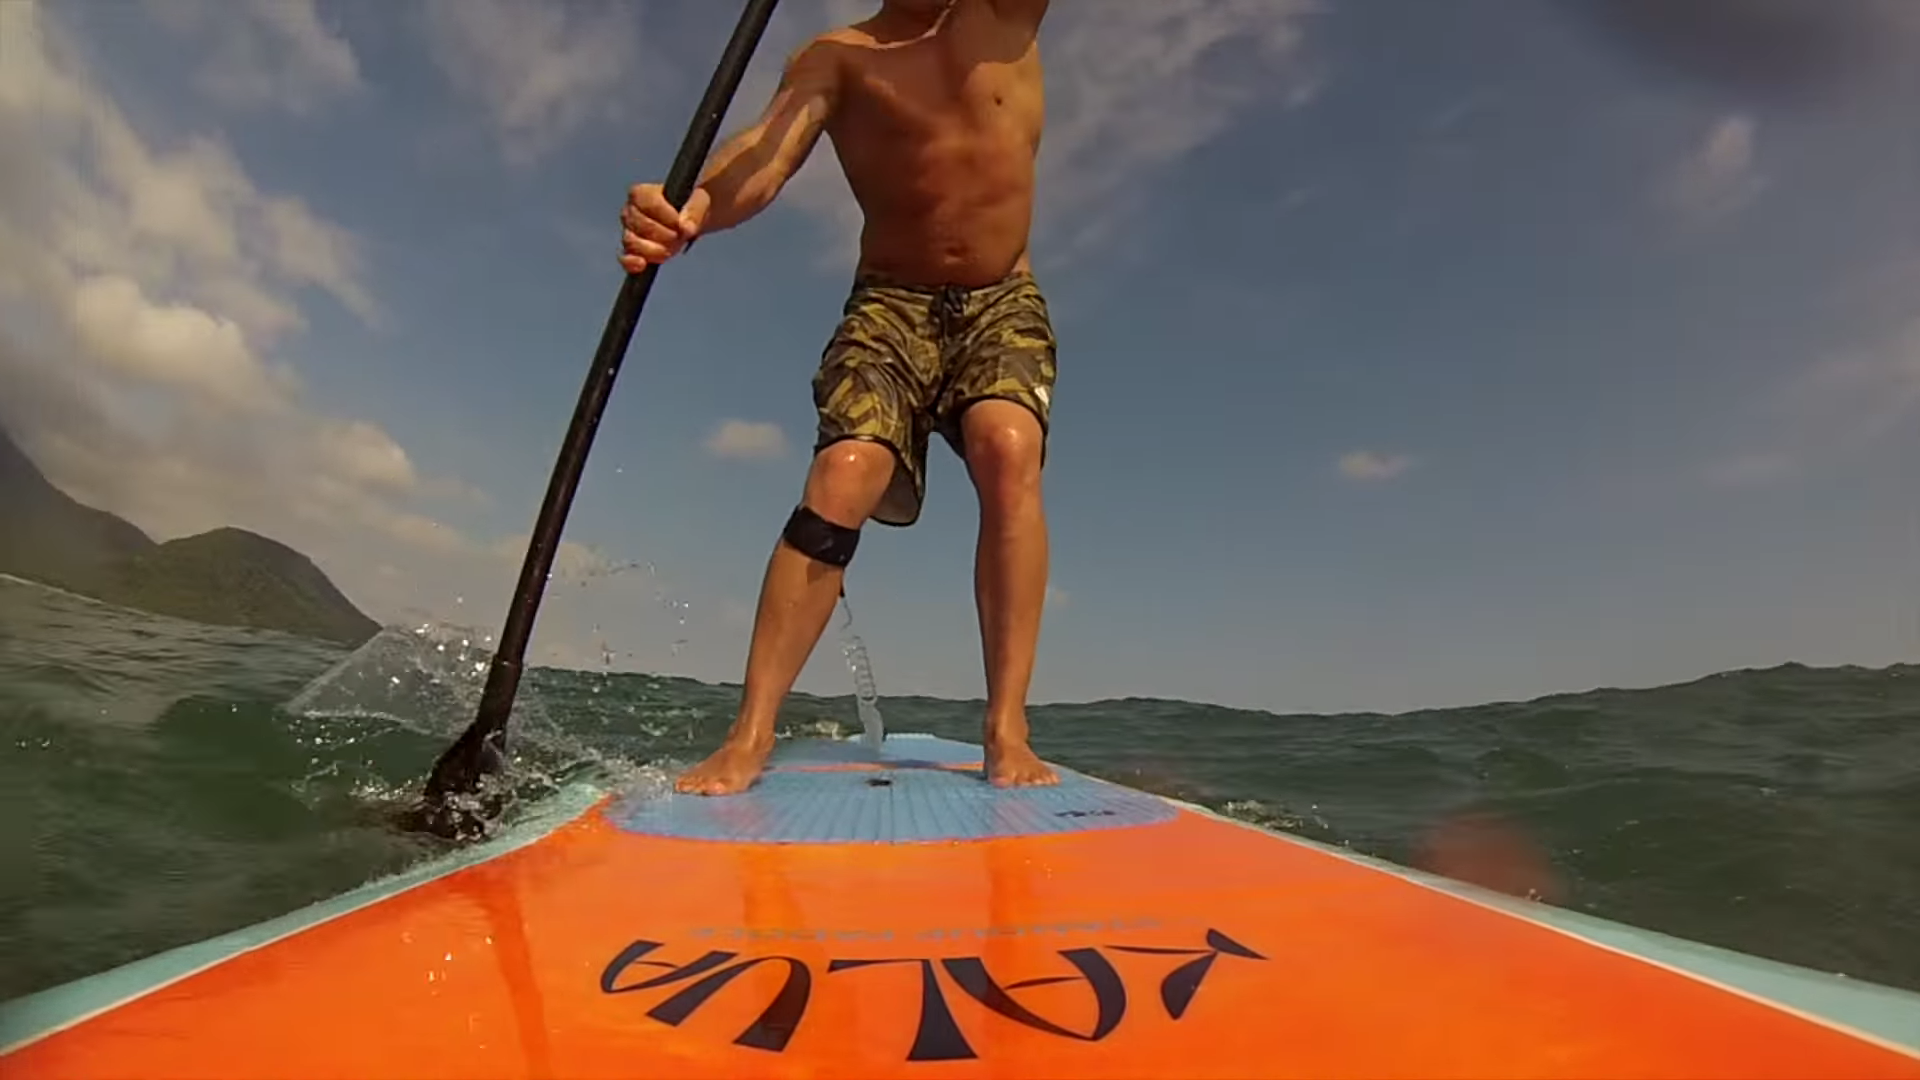 a3e0f8492 Remada no Mar de Stand Up Paddle · prancha stand up paddle